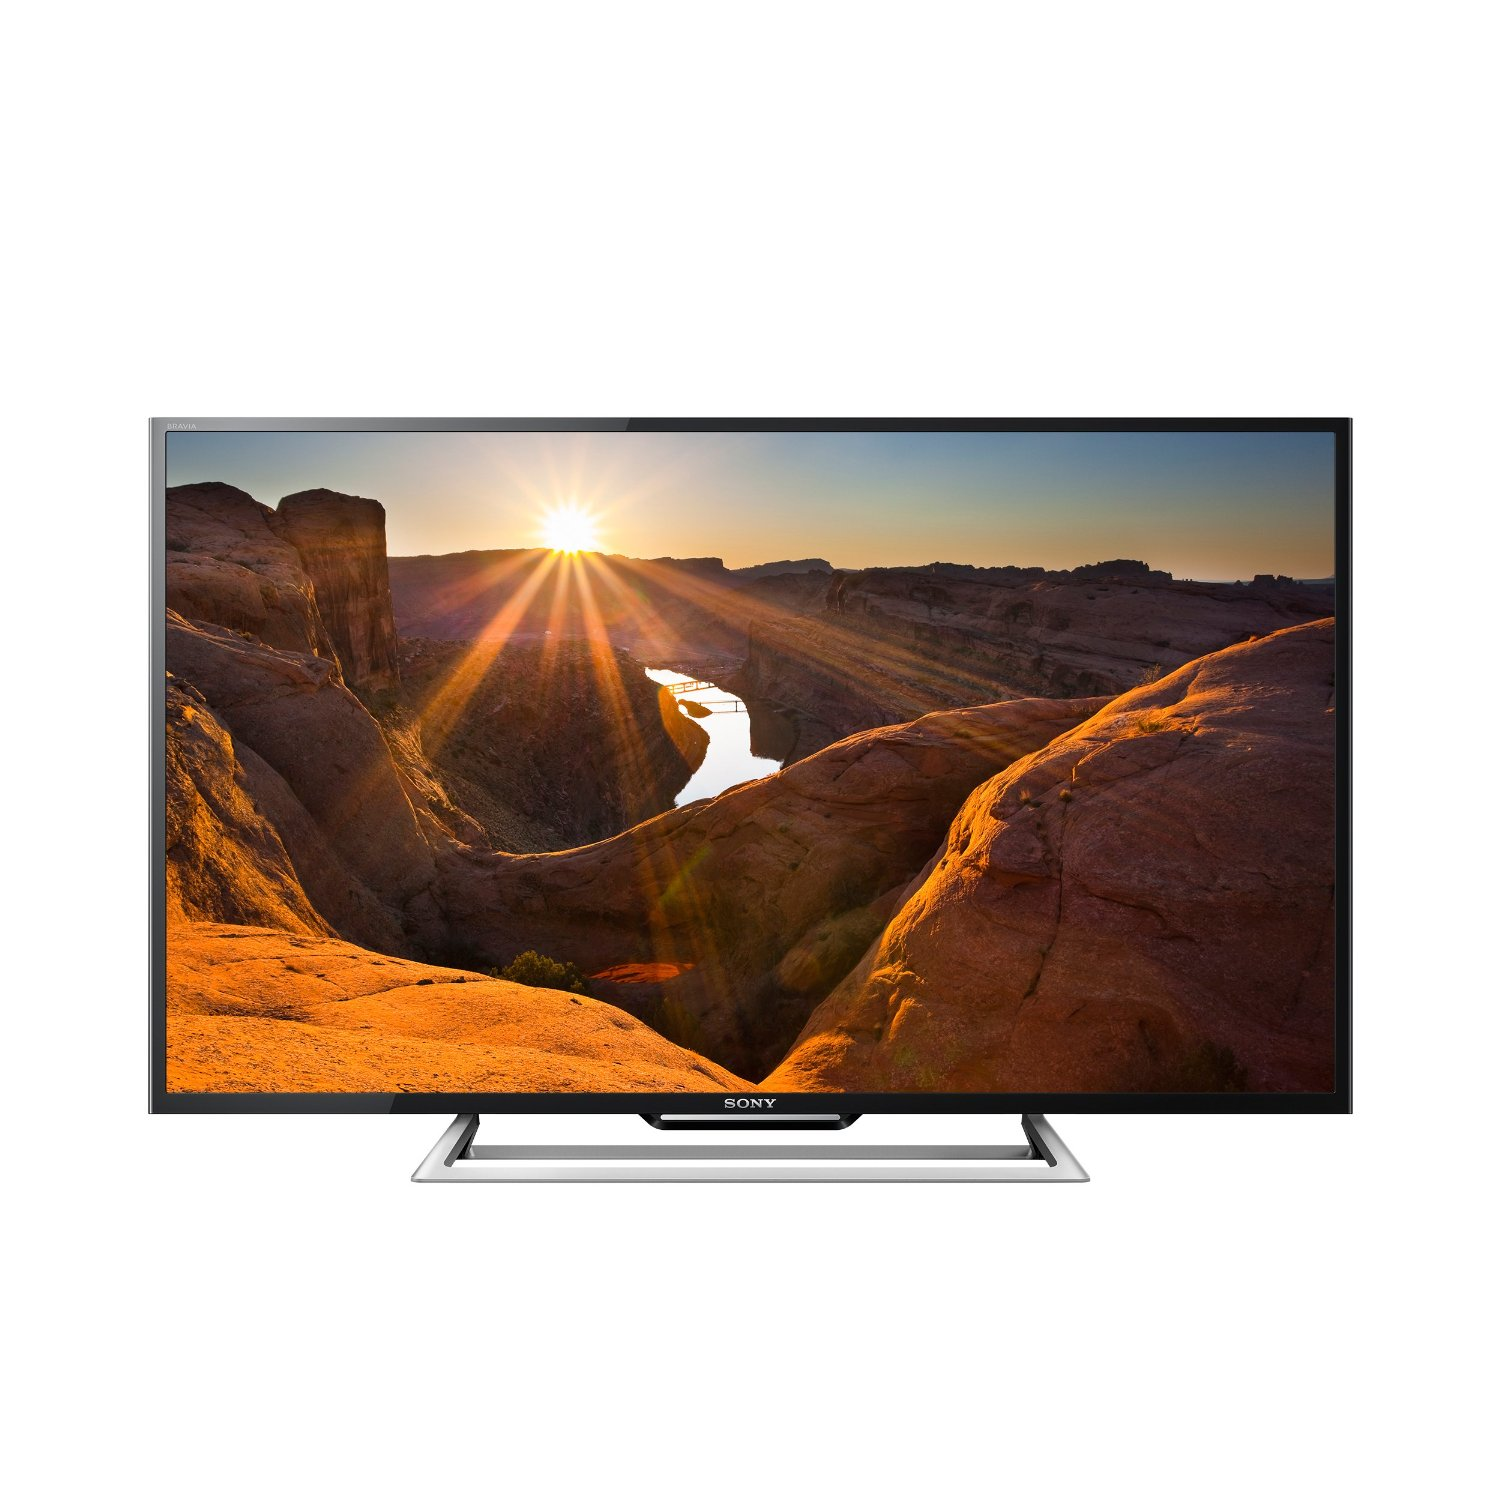 Sony Bravia KLV 48R55C 48 Inches Full HD LED Television available at ShopClues for Rs.42490